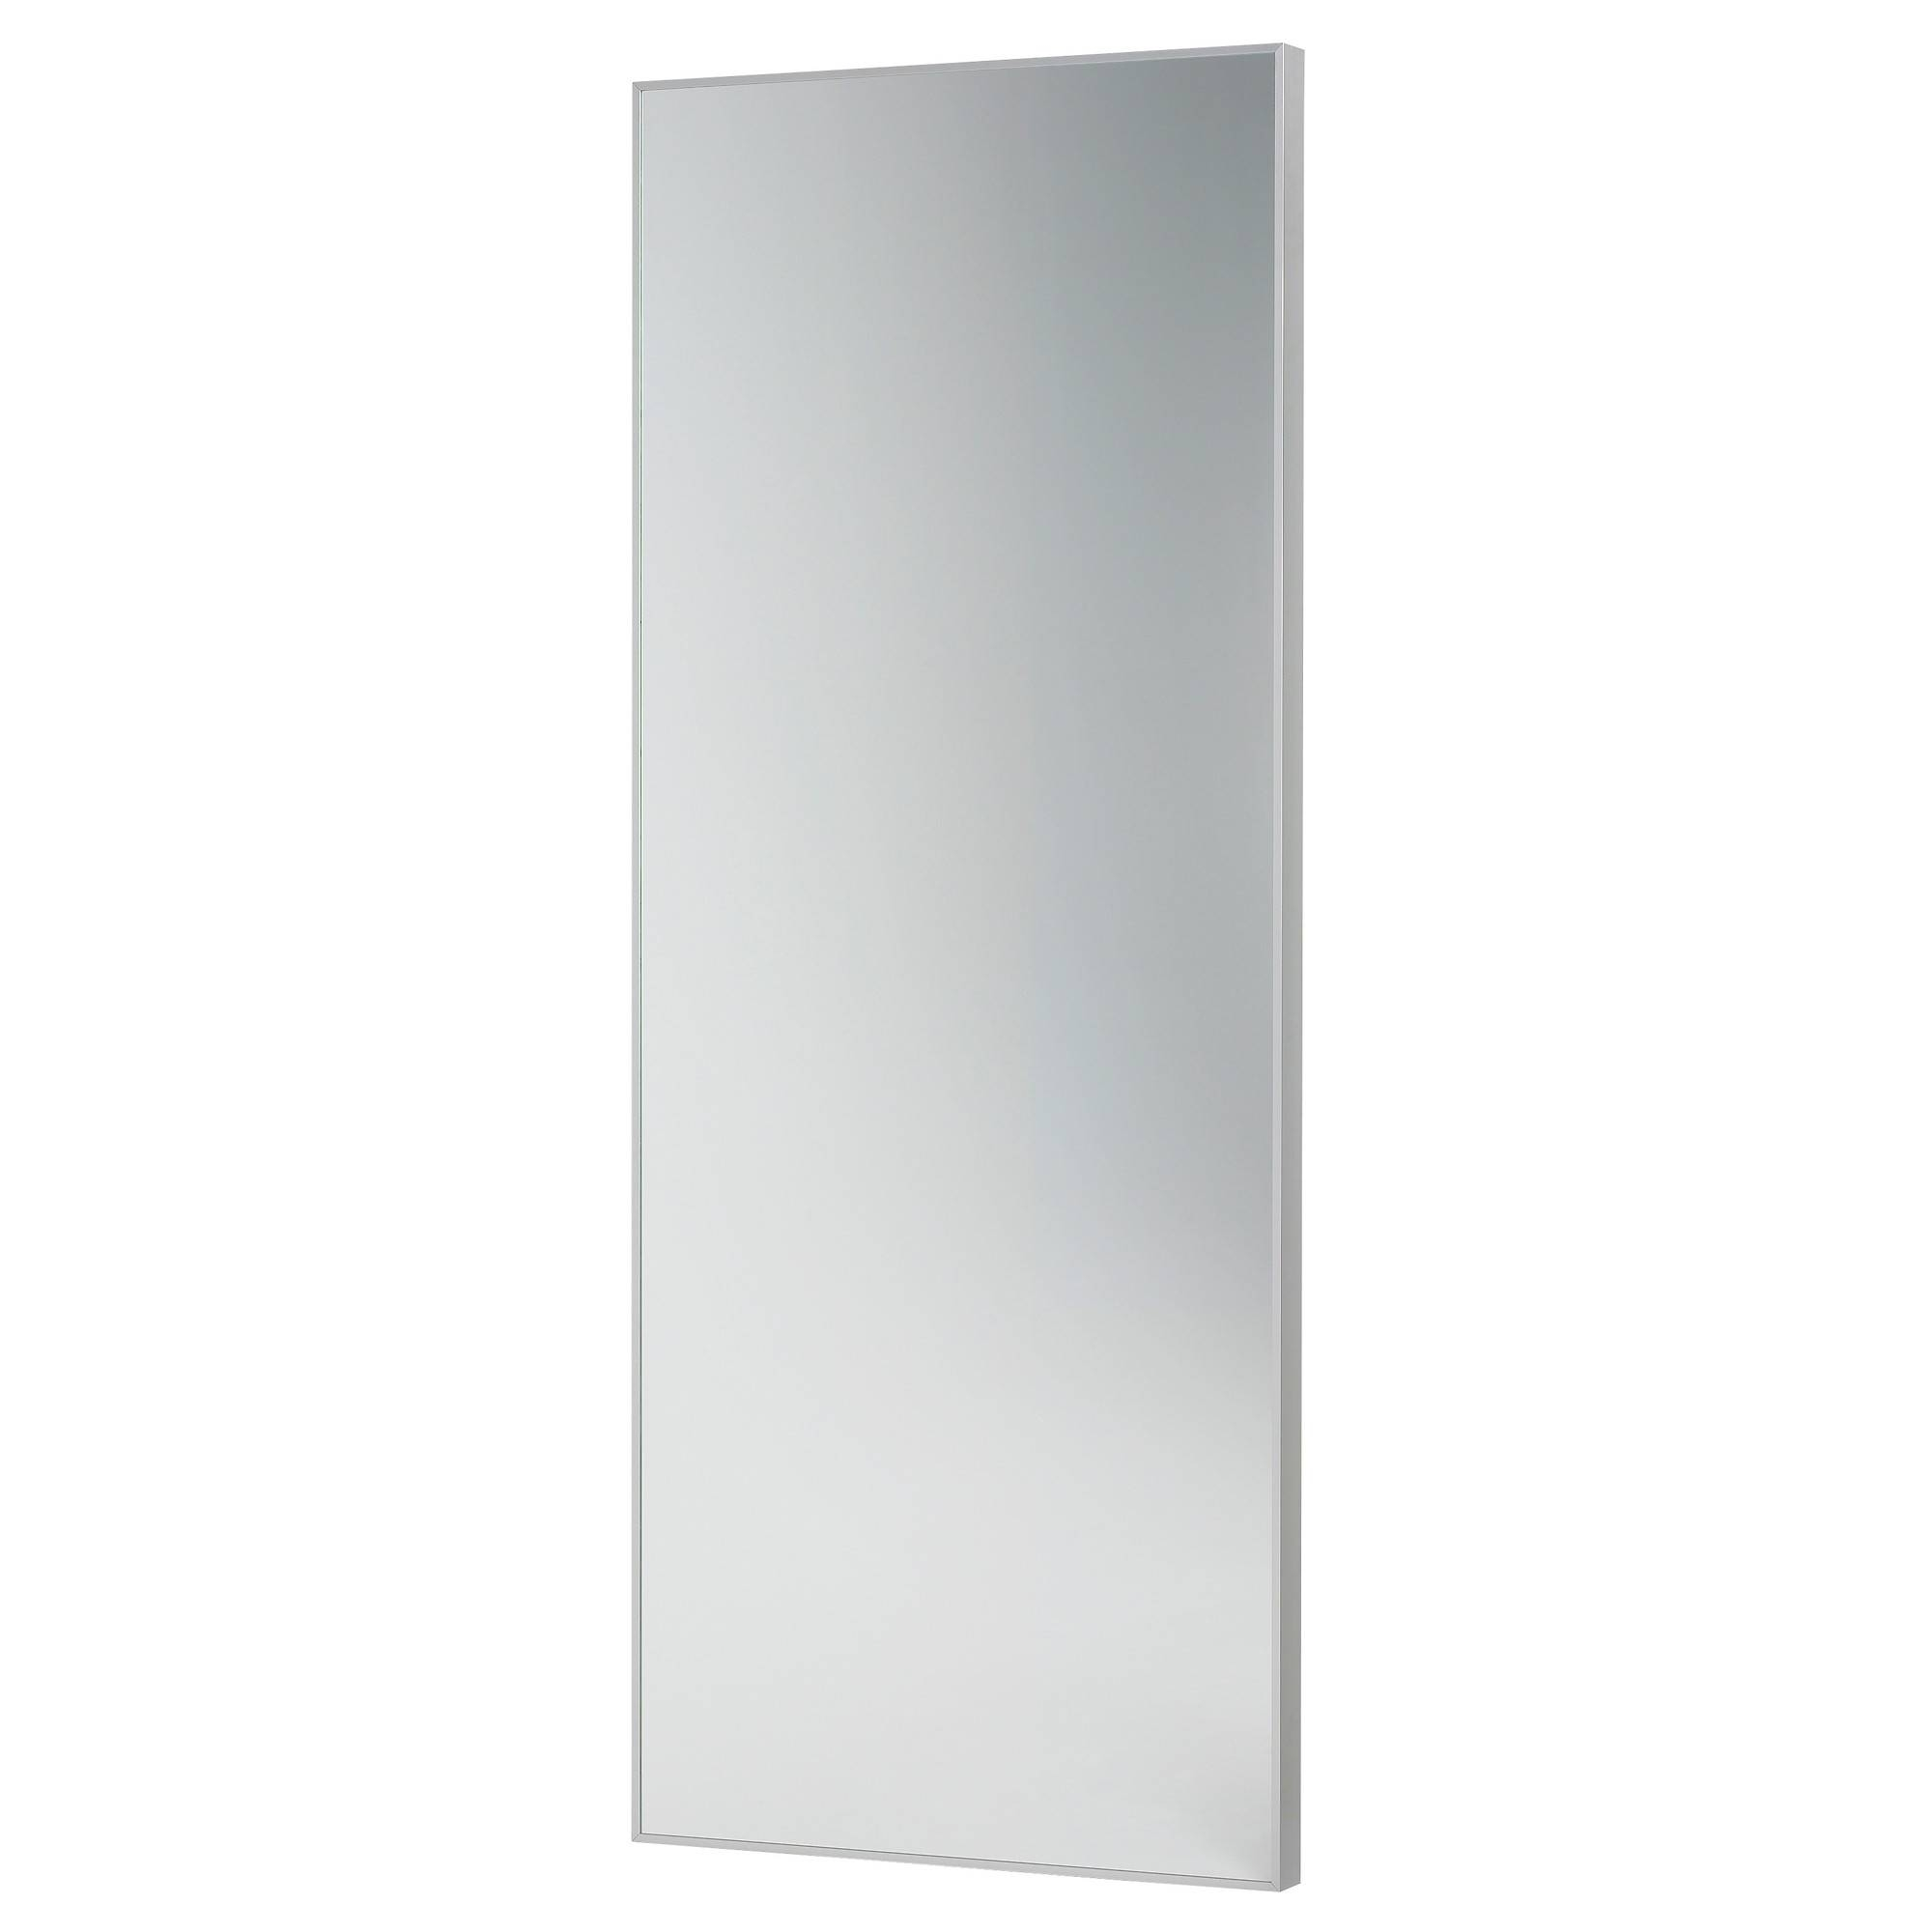 Full-Length Mirrors - Ikea for Huge Full Length Mirrors (Image 18 of 25)